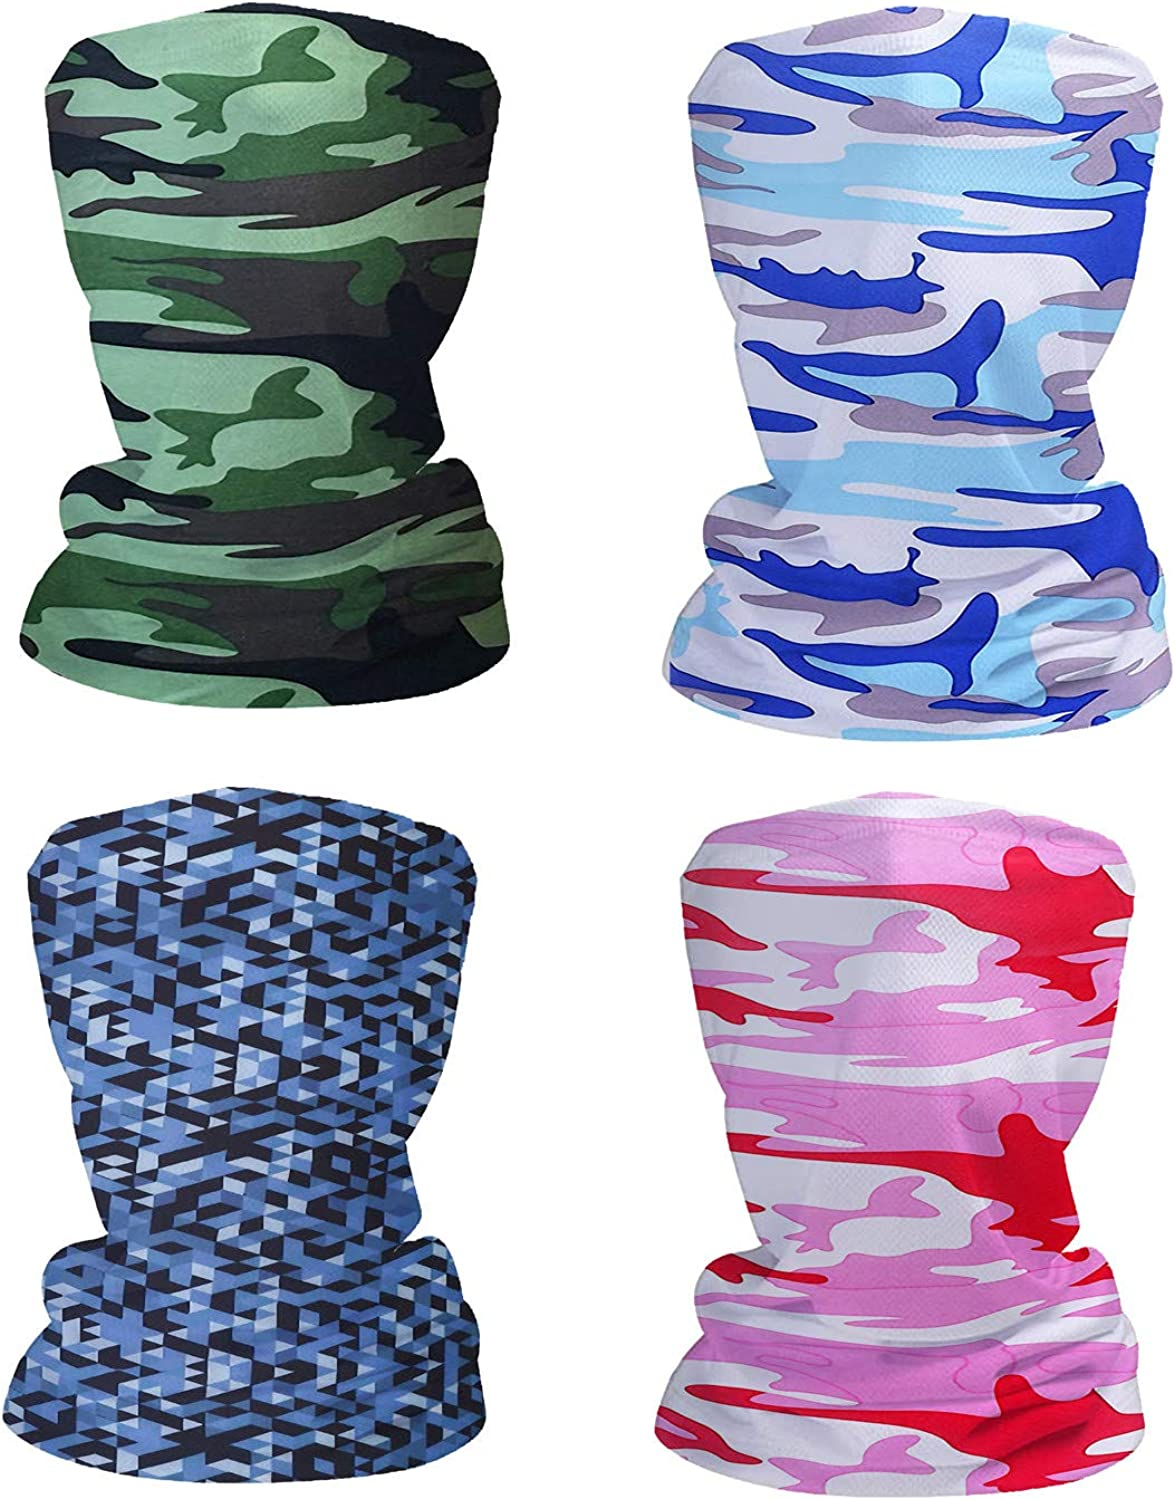 Fashion Face Dust Mask (4 PCS) Bandanas Sports & Casual Headwear Seamless Neck Gaiter, Headwrap, Balaclava, Helmet Liner